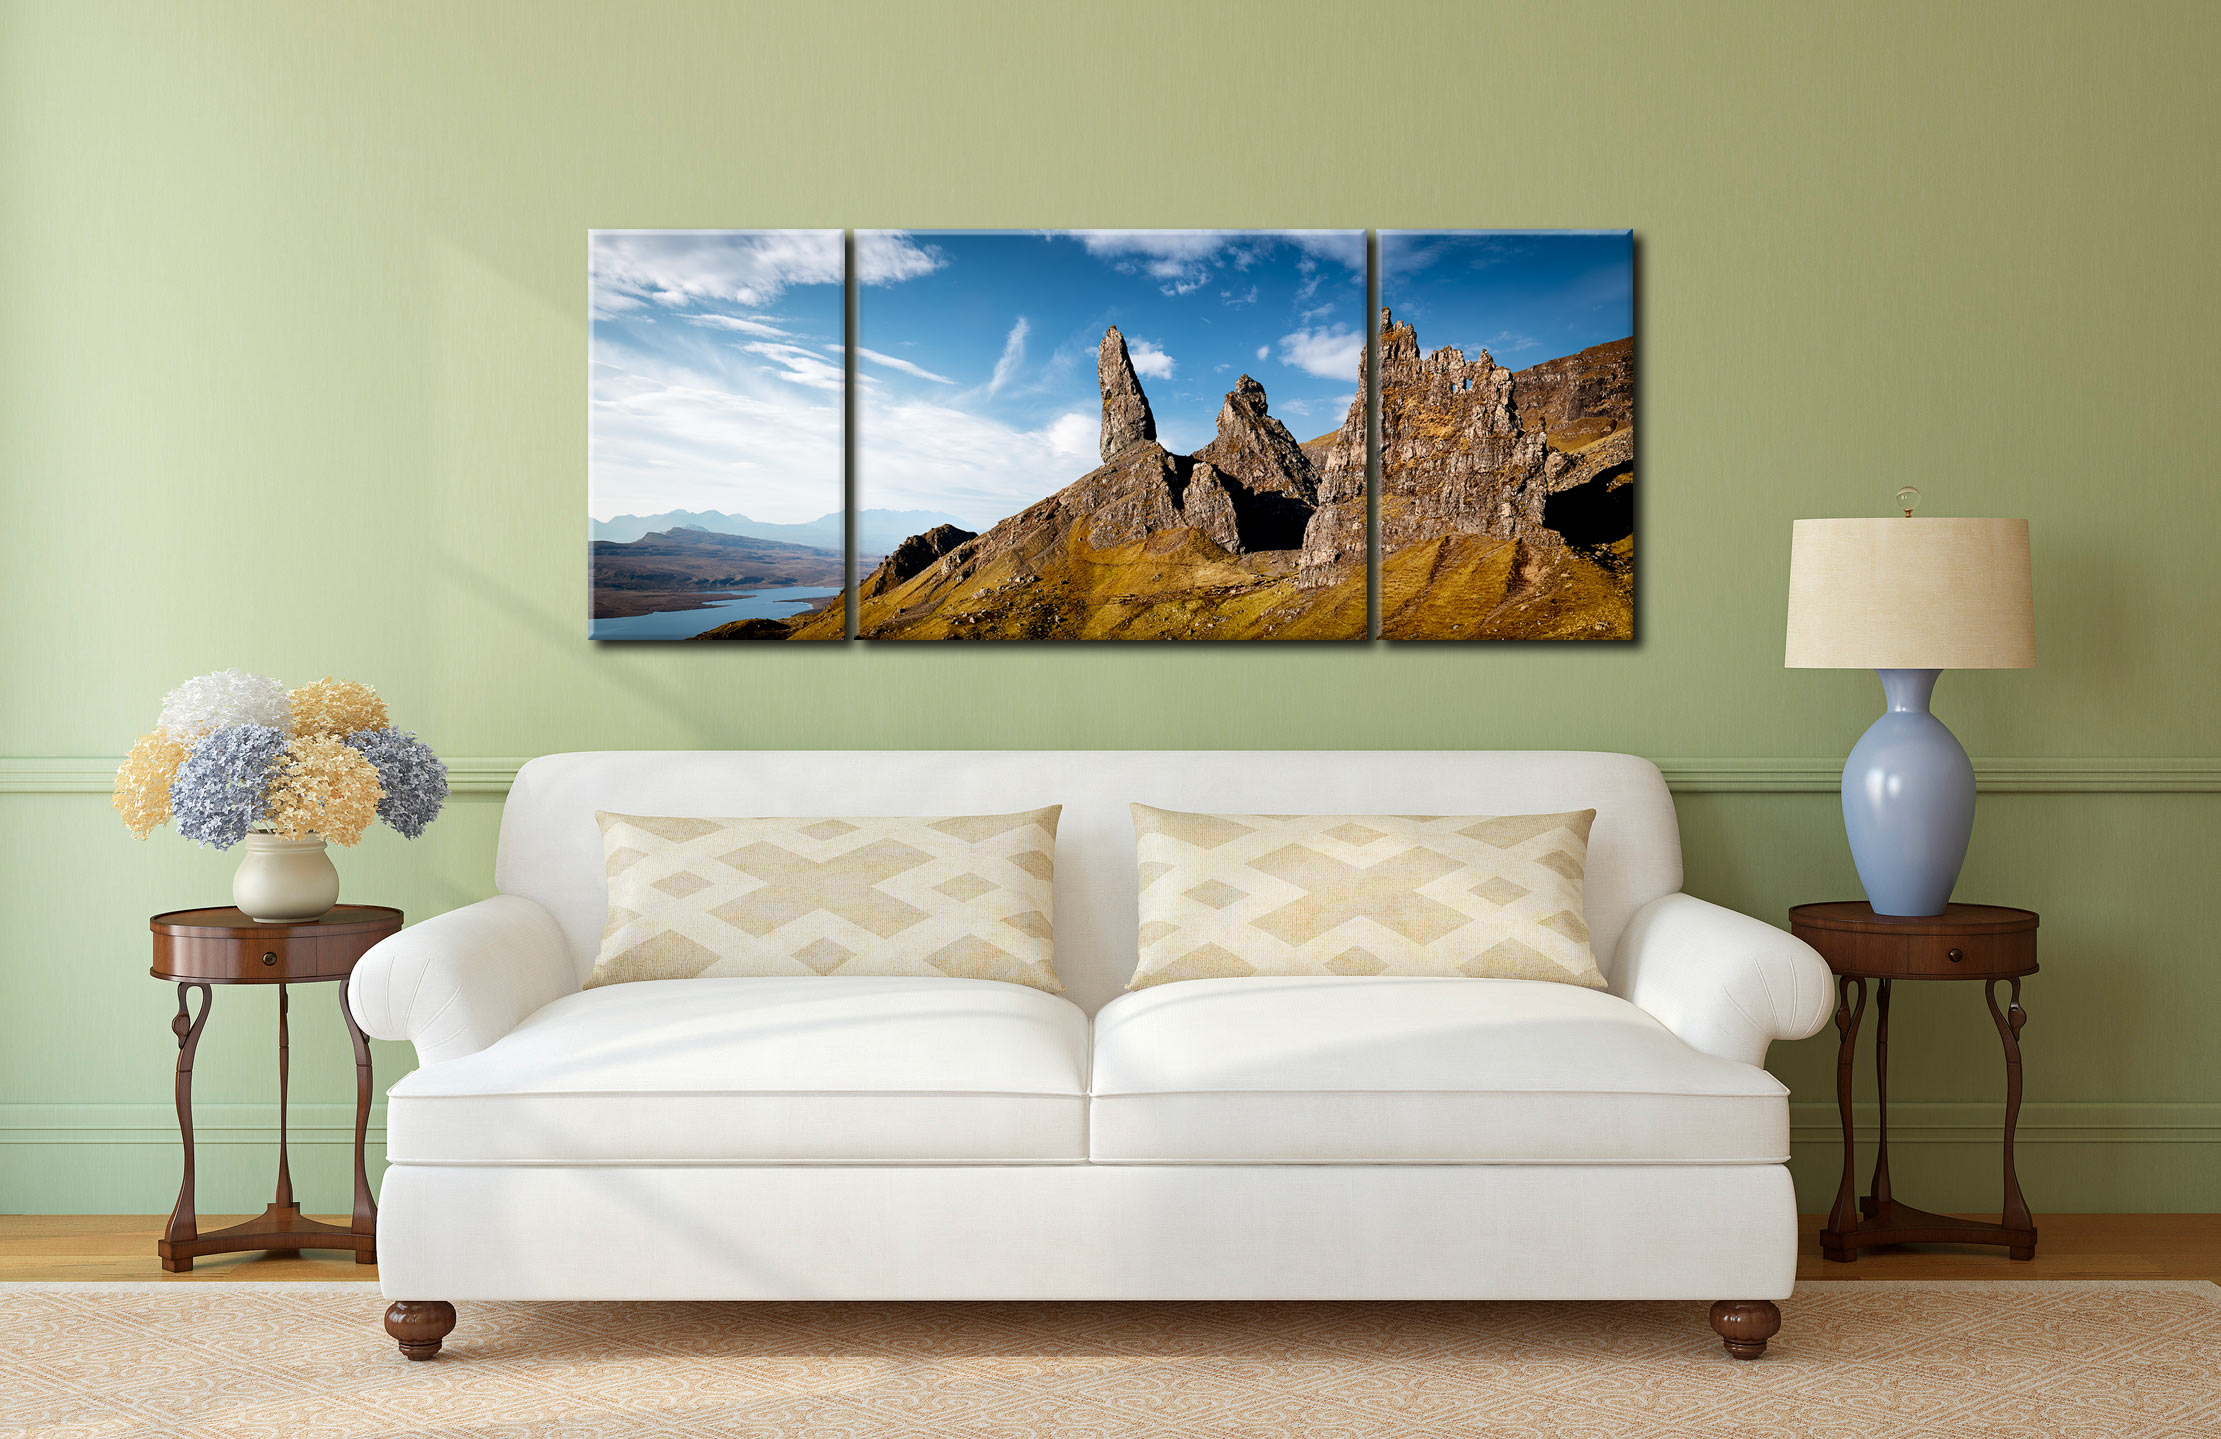 The Old Man of Storr and Needle Rock - 3 Panel Wide Centre Canvas on Wall